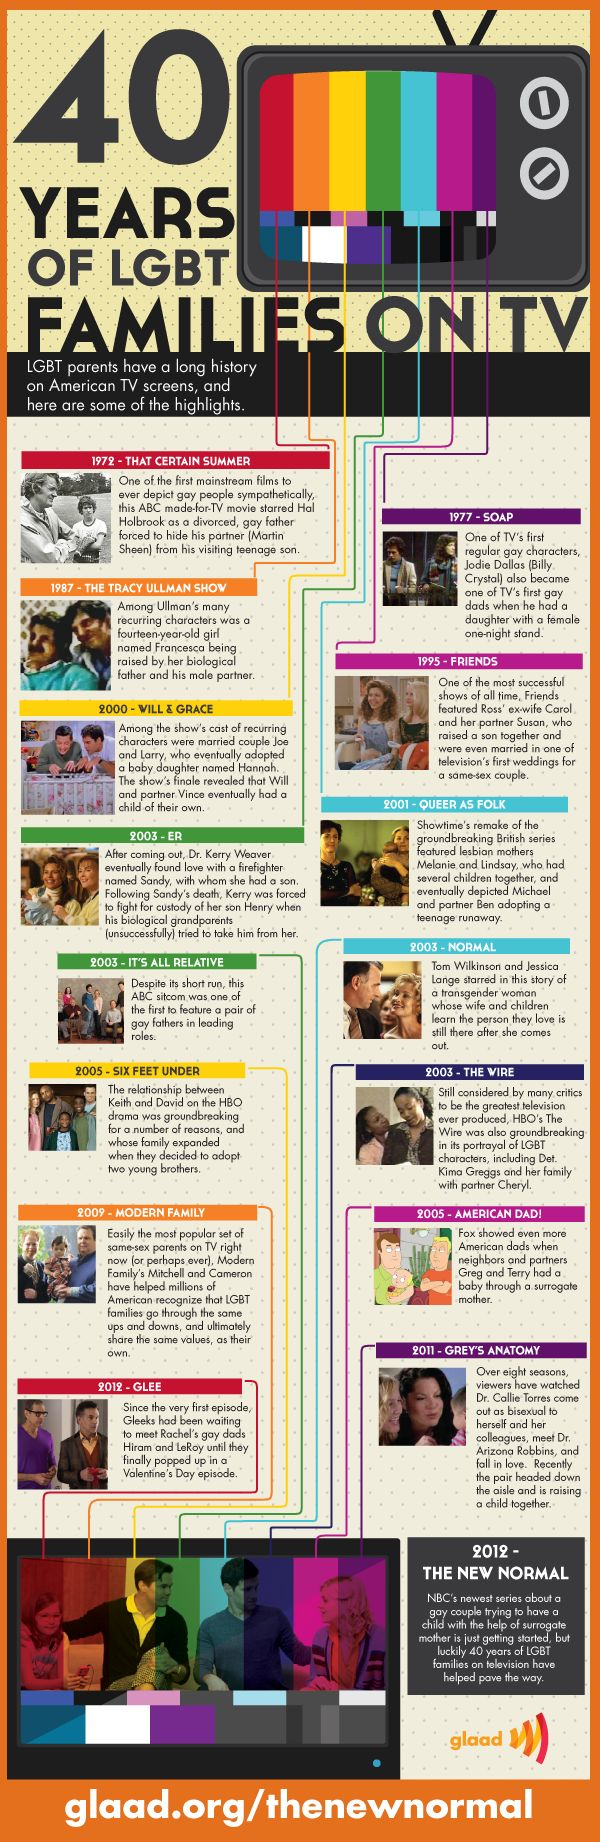 Infographic: What the One Million Moms Don't Want You to See | GLAAD: Gay couples have a 40 year history on TV. No joke!